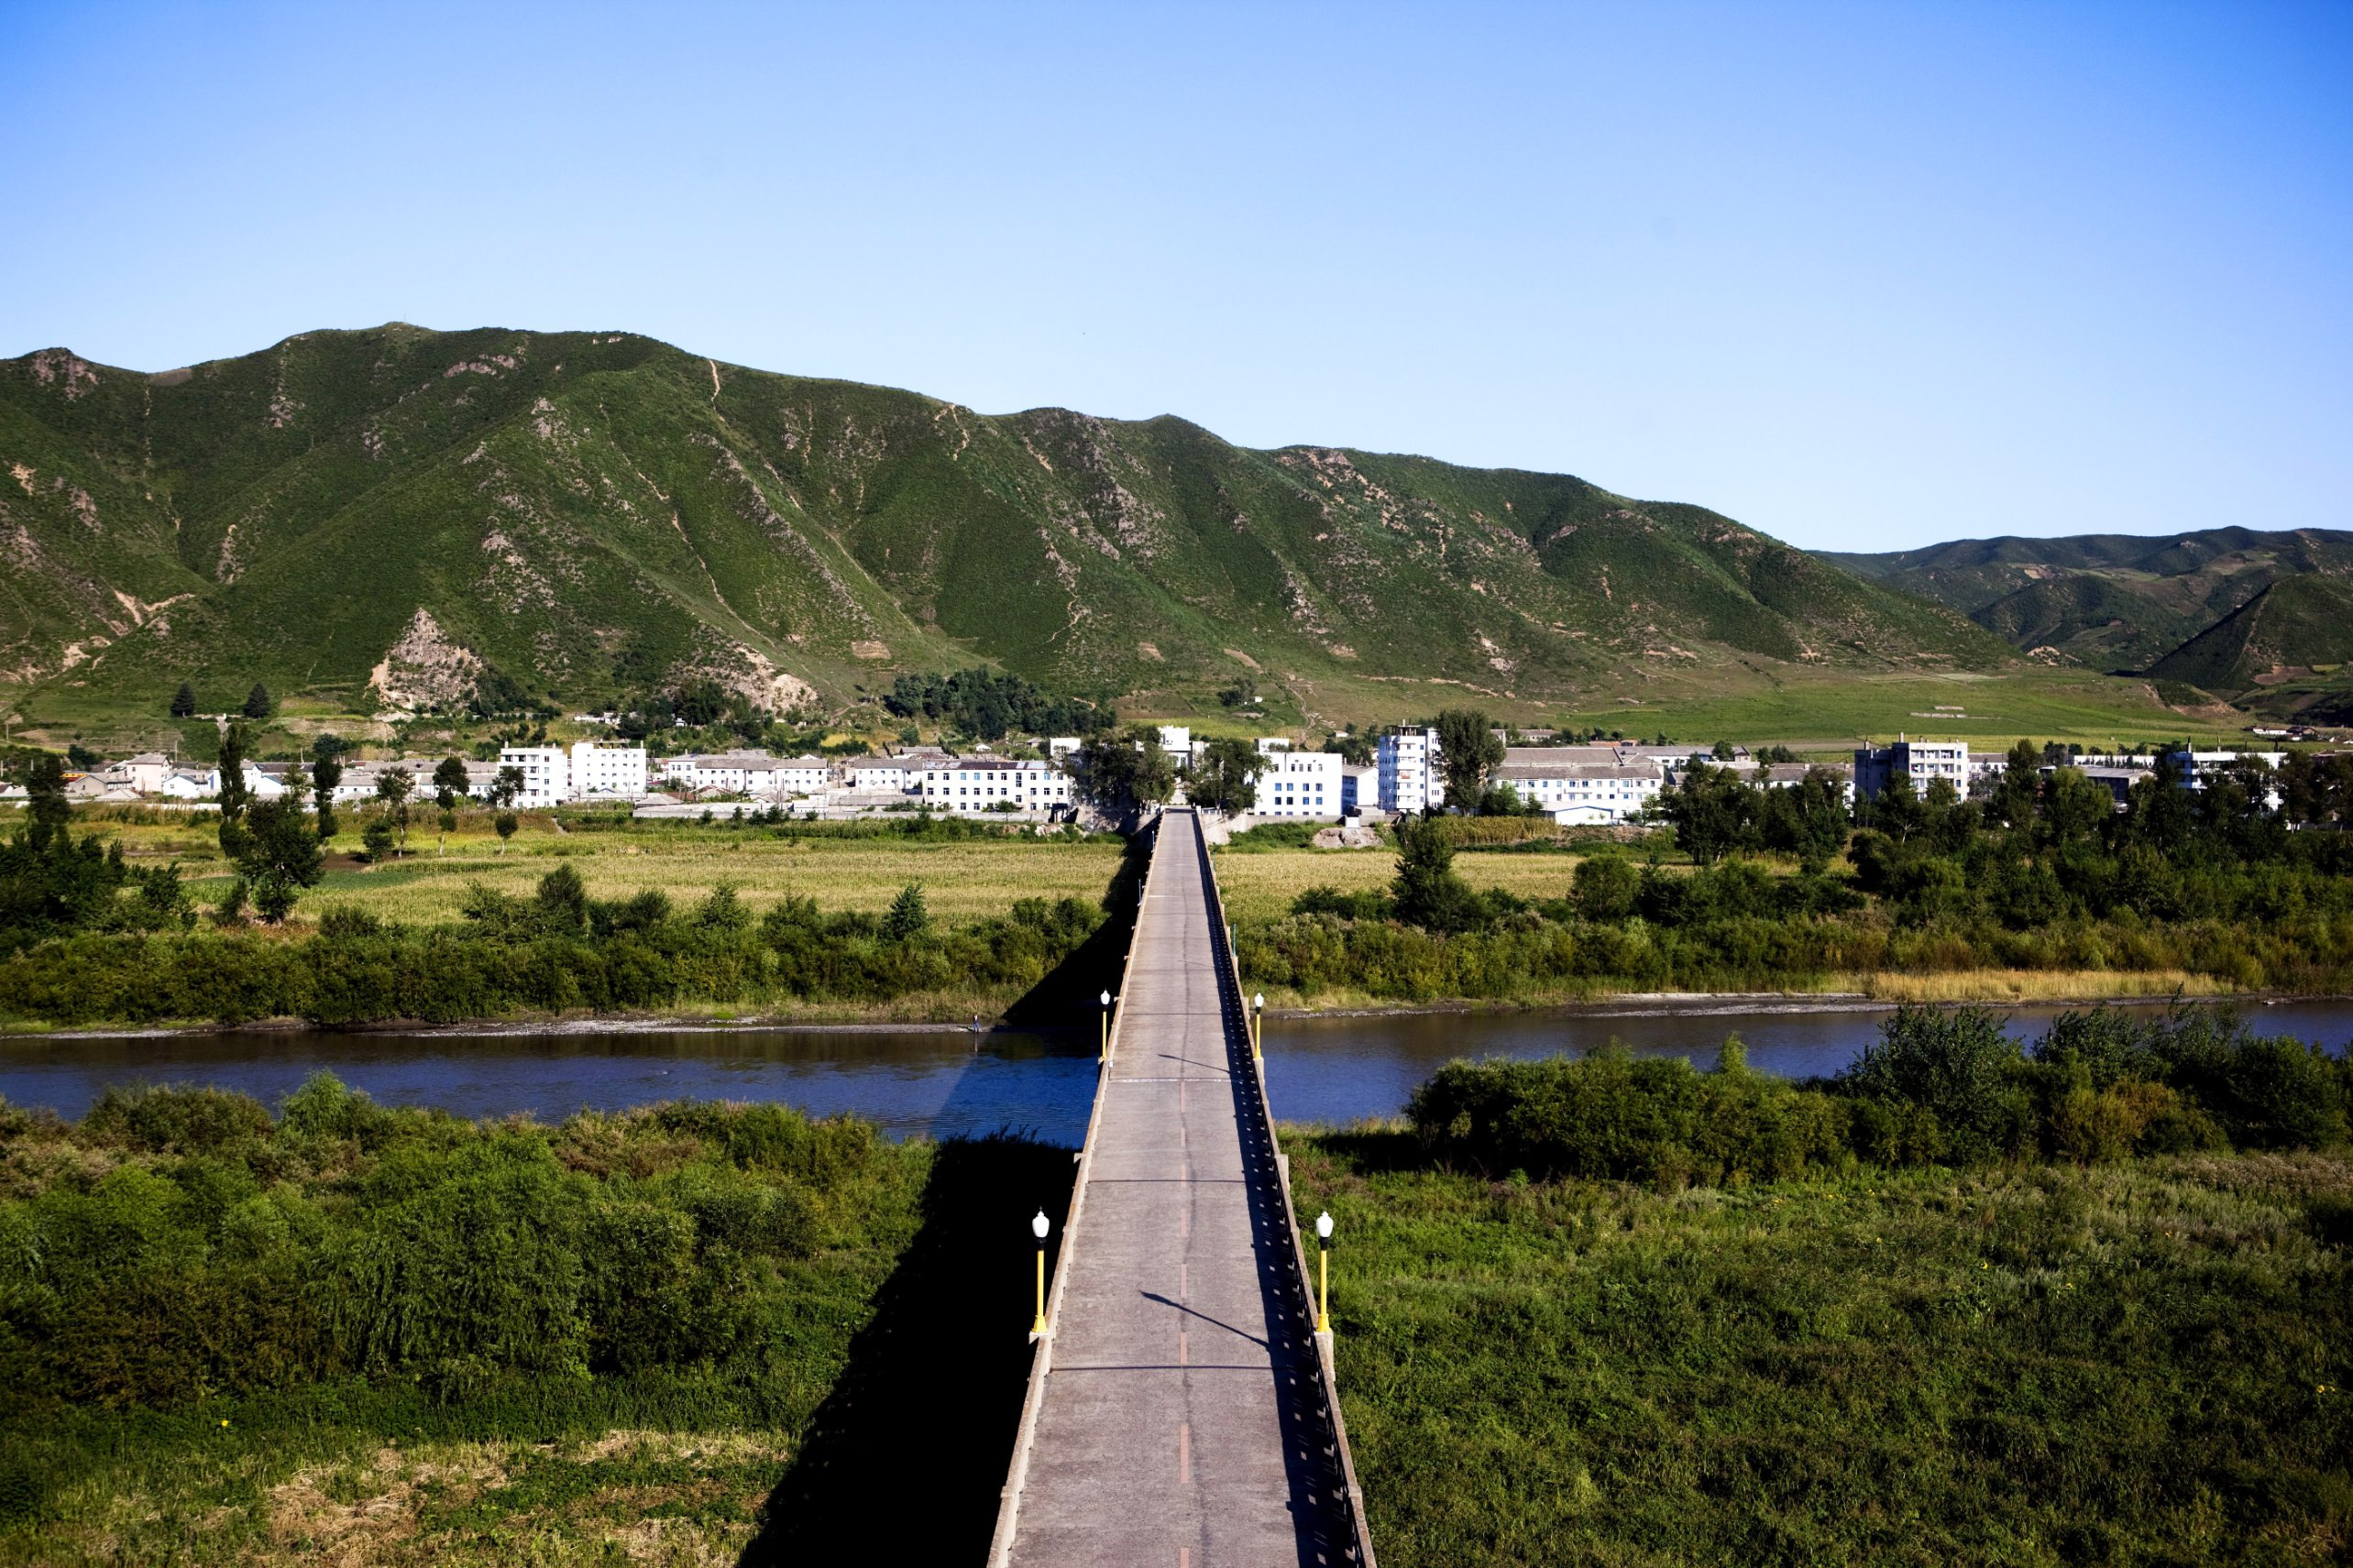 First cycling tour to North Korea | CNN Travel